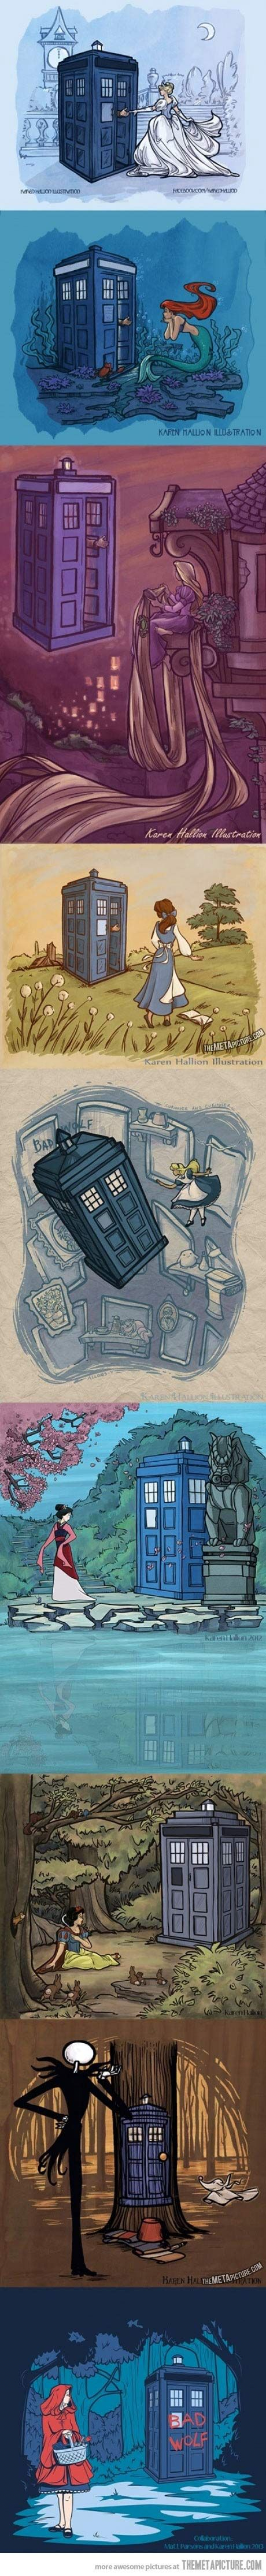 Doctor Who TARDIS/Disney